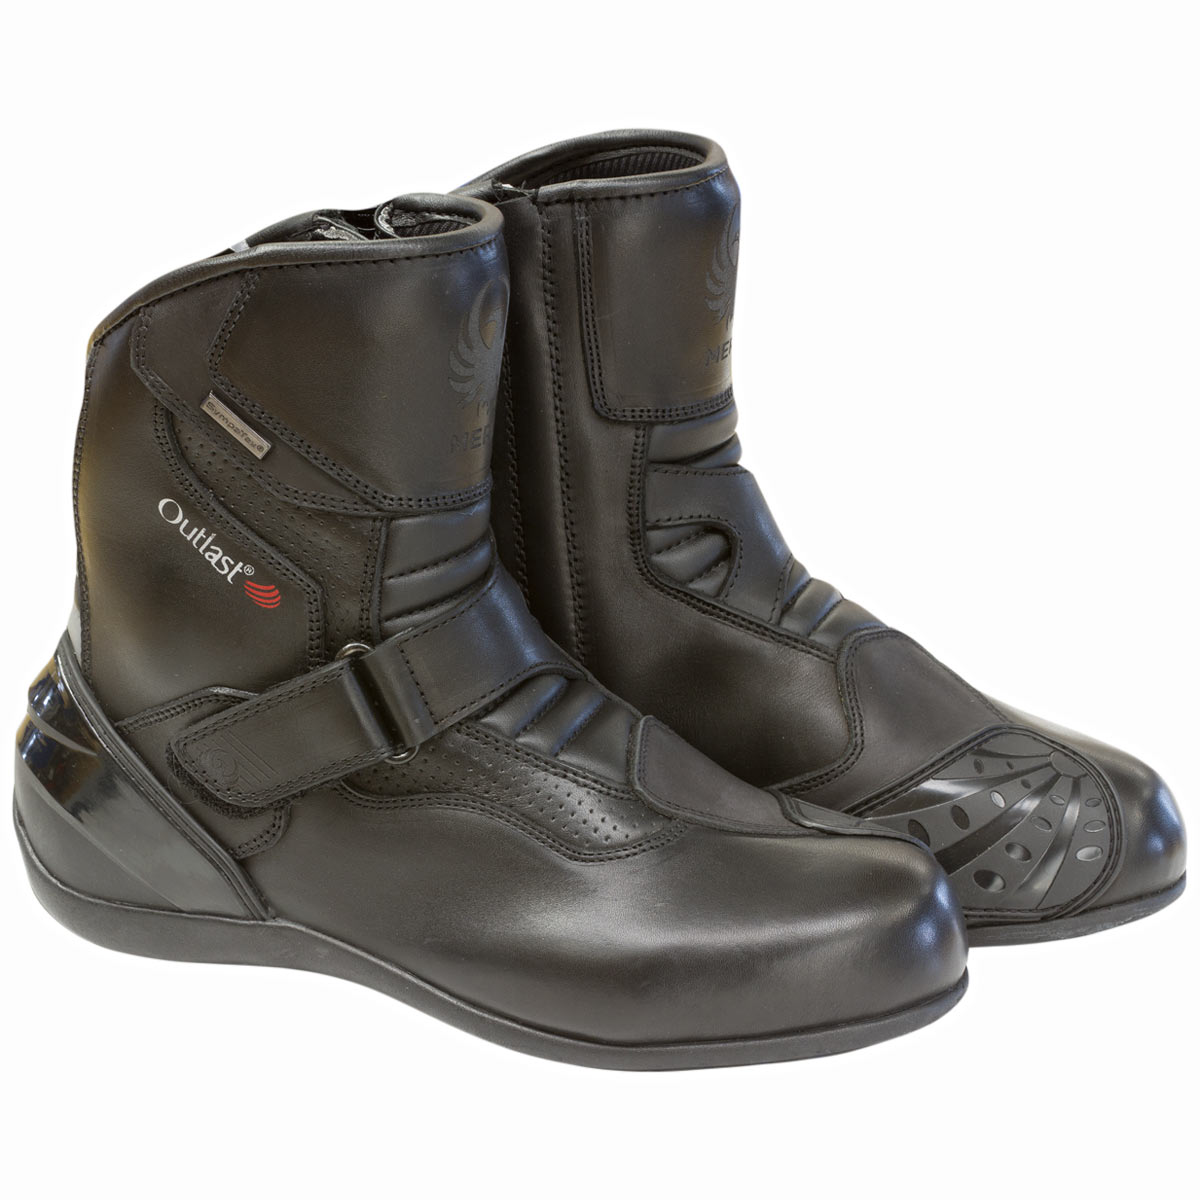 official supplier top design great look Merlin G24 Nova Outlast Boots WP - Black